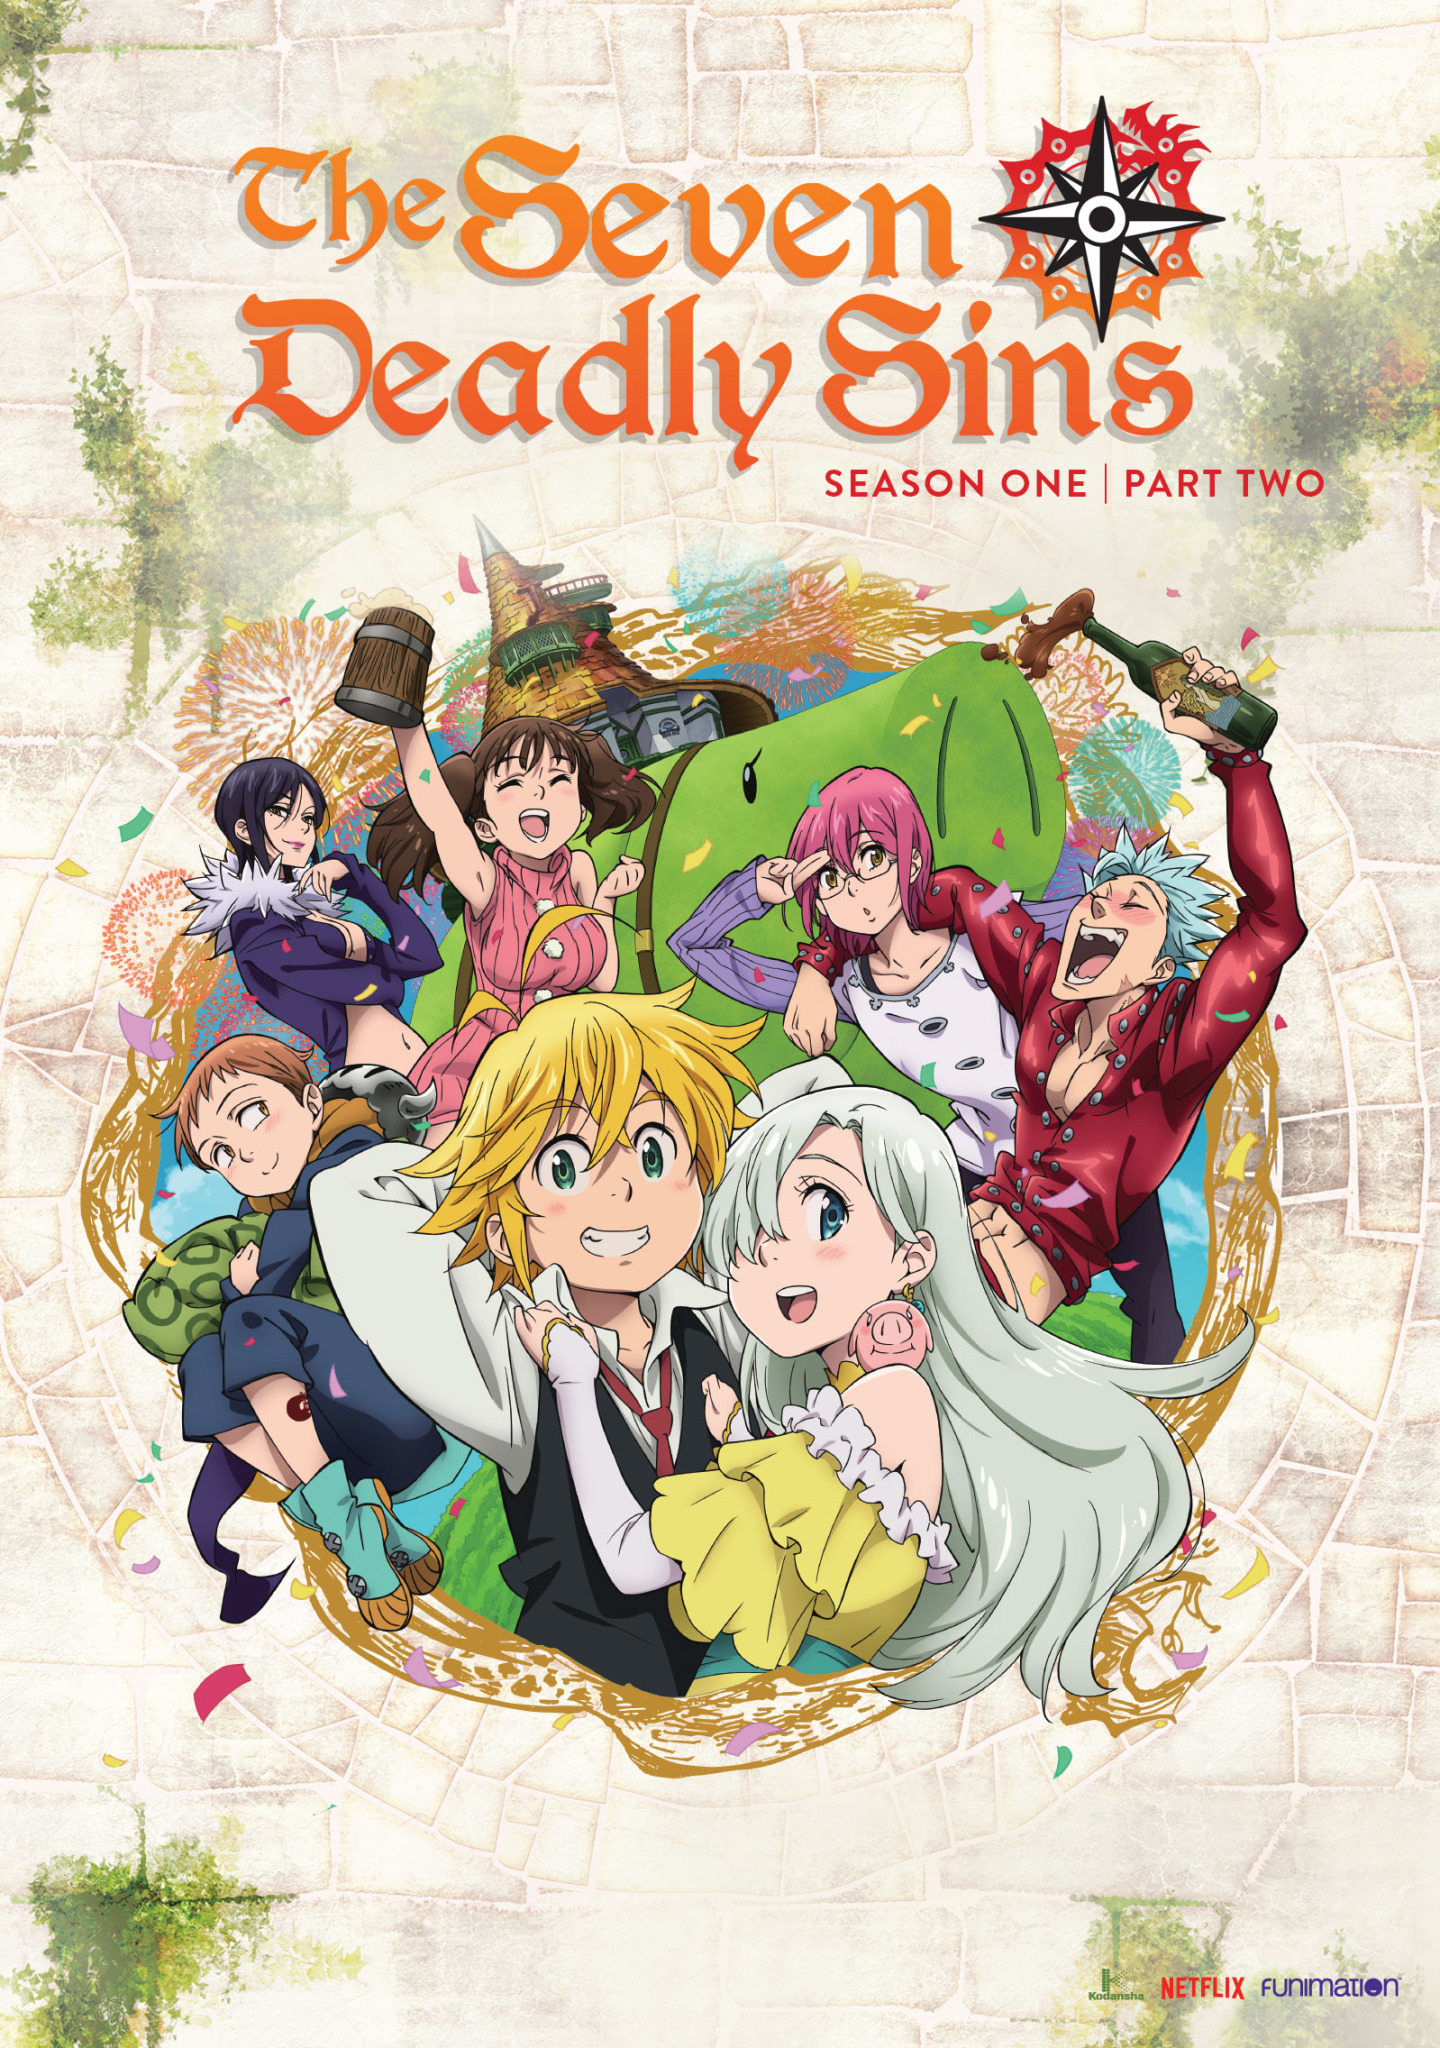 Seven Deadly Sins Season 1 Part 2 DVD